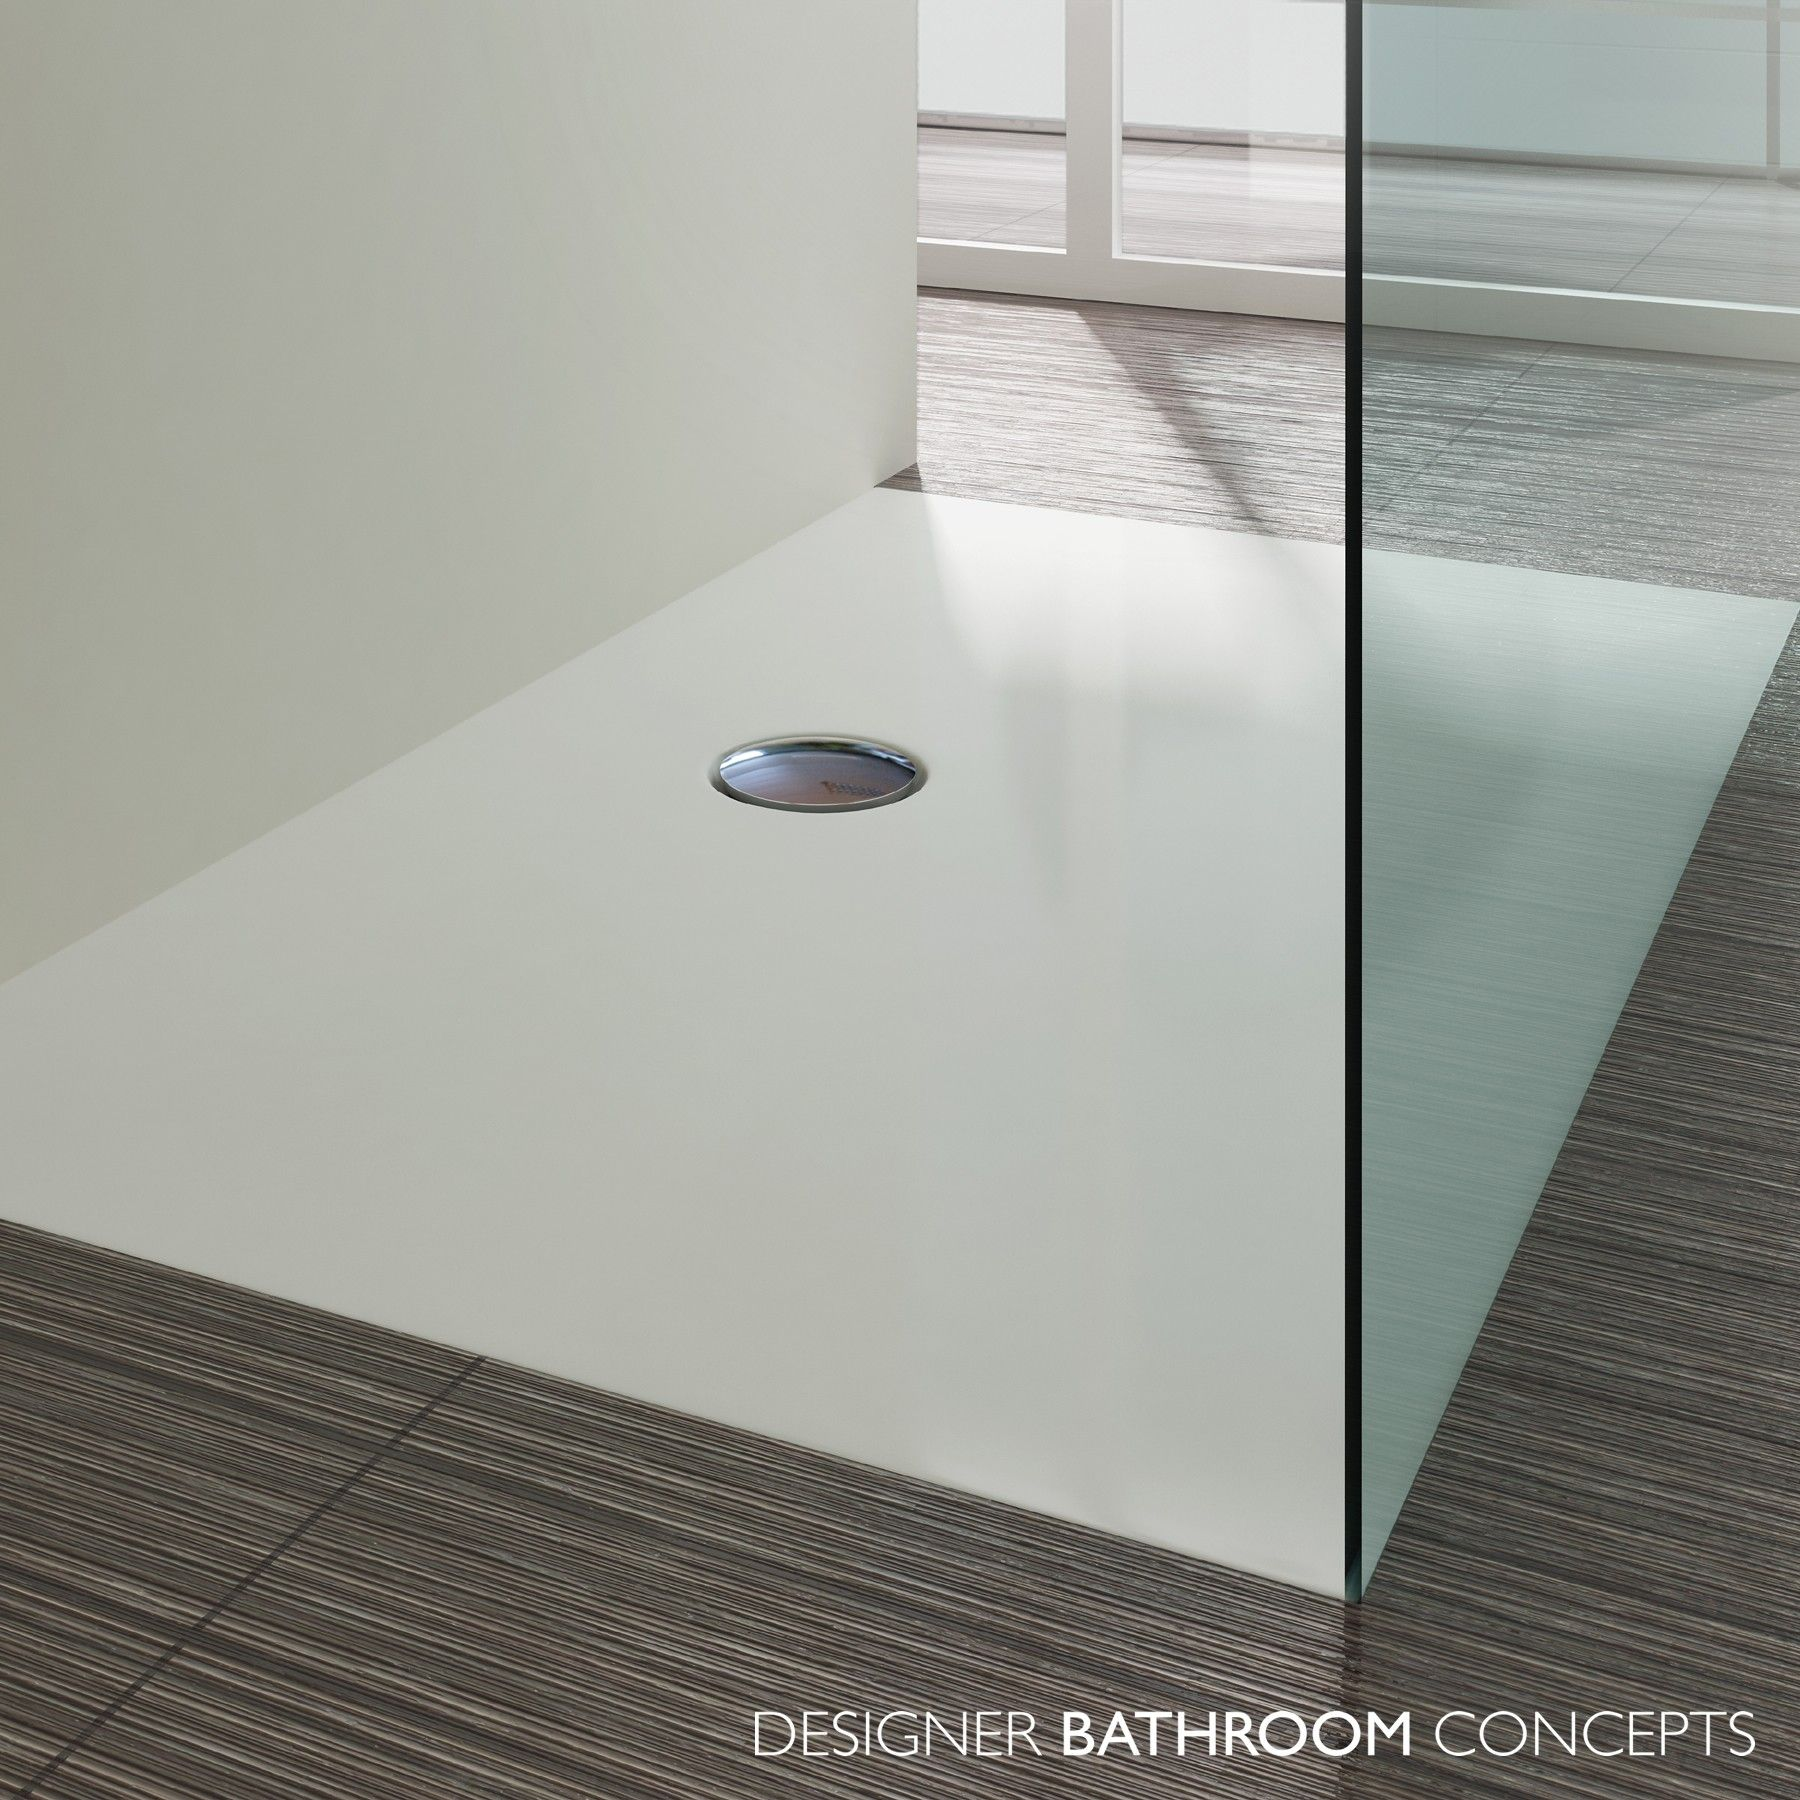 The 31 best Shower tray images on Pinterest   Shower trays, Bathroom ...